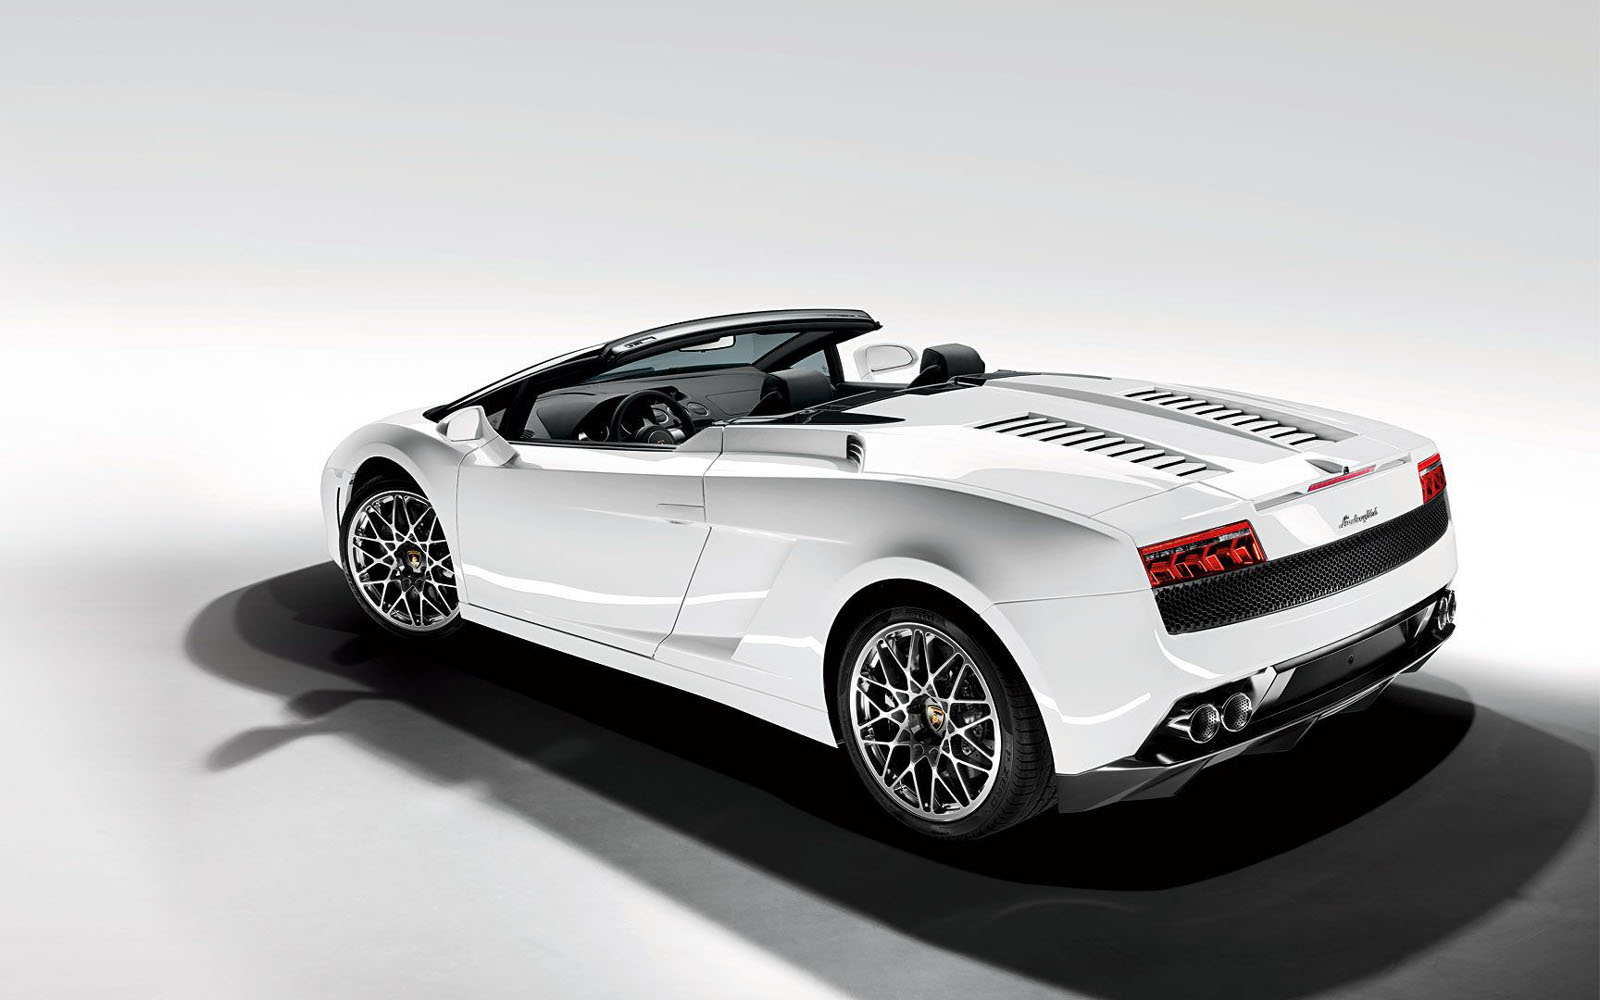 Lamborghini Gallardo Lp560 4 Spyder Car Wallpapers